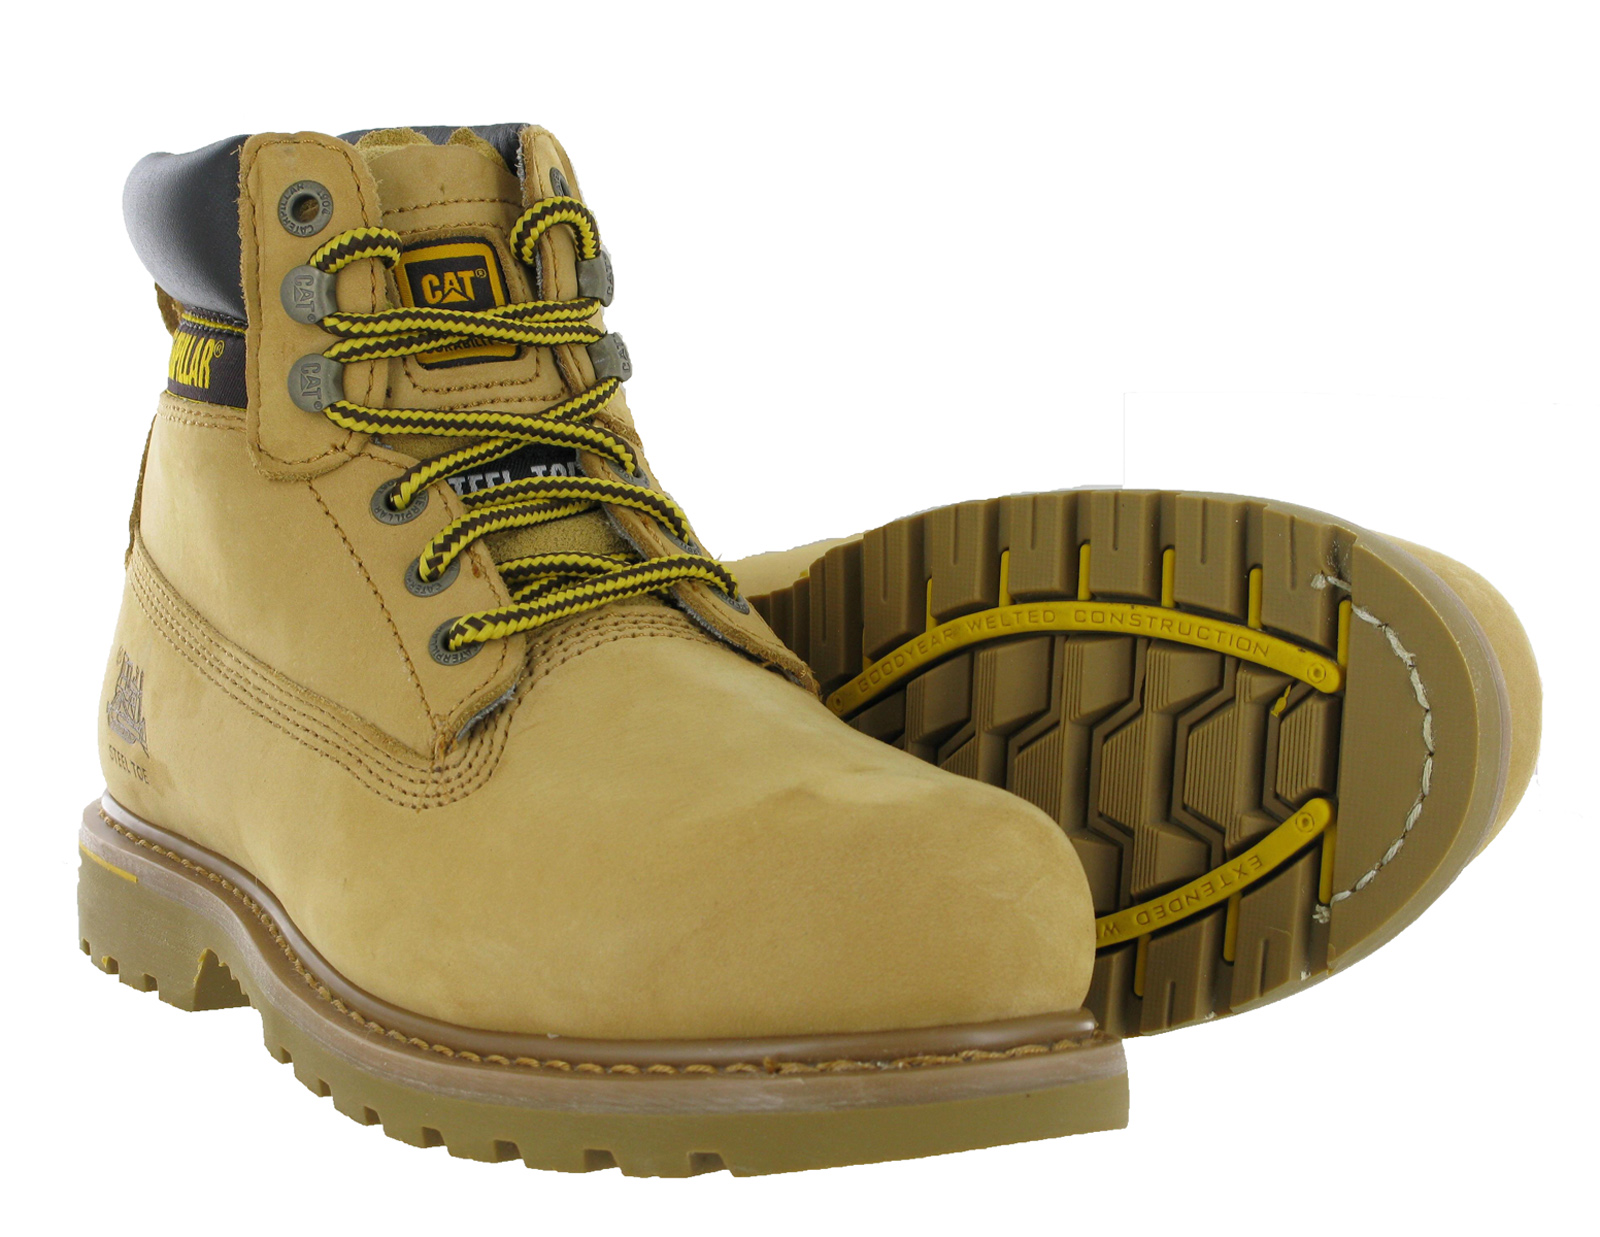 Mens CAT Caterpillar Holton Leather Steel Toe Cap Safety Work Boots Size 6-15 UK